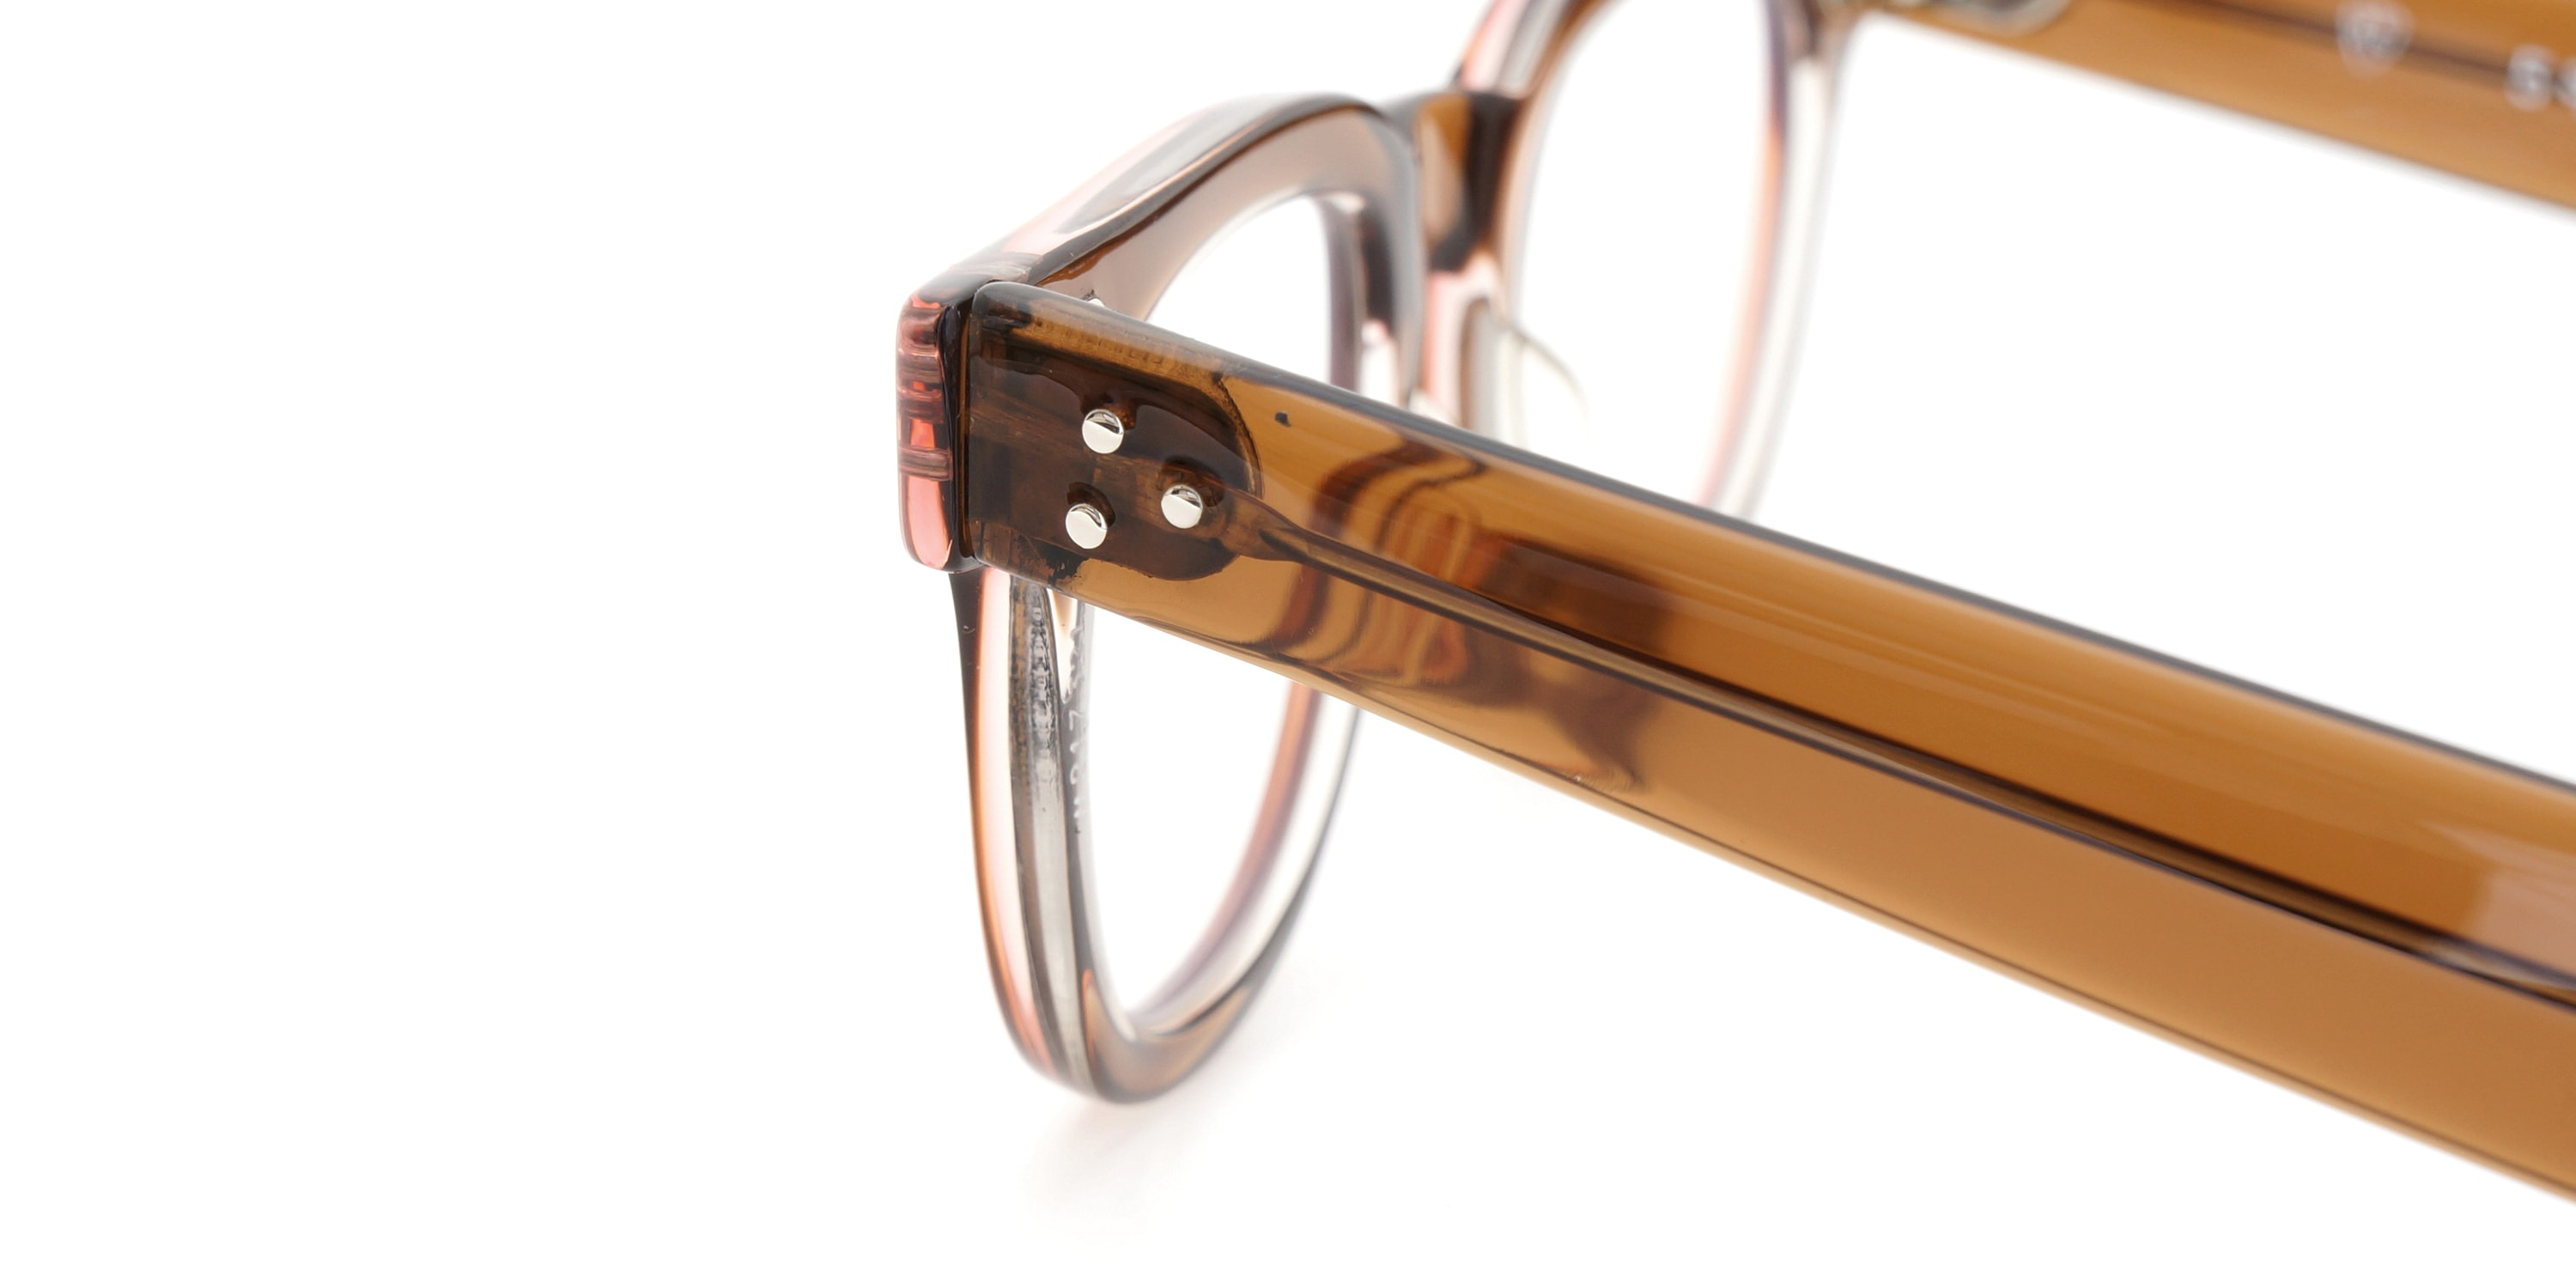 The Spectacle メガネ 1950s-70s TART OPTICAL FDR (FRAME USA) BROWN 44-22 イメージ17